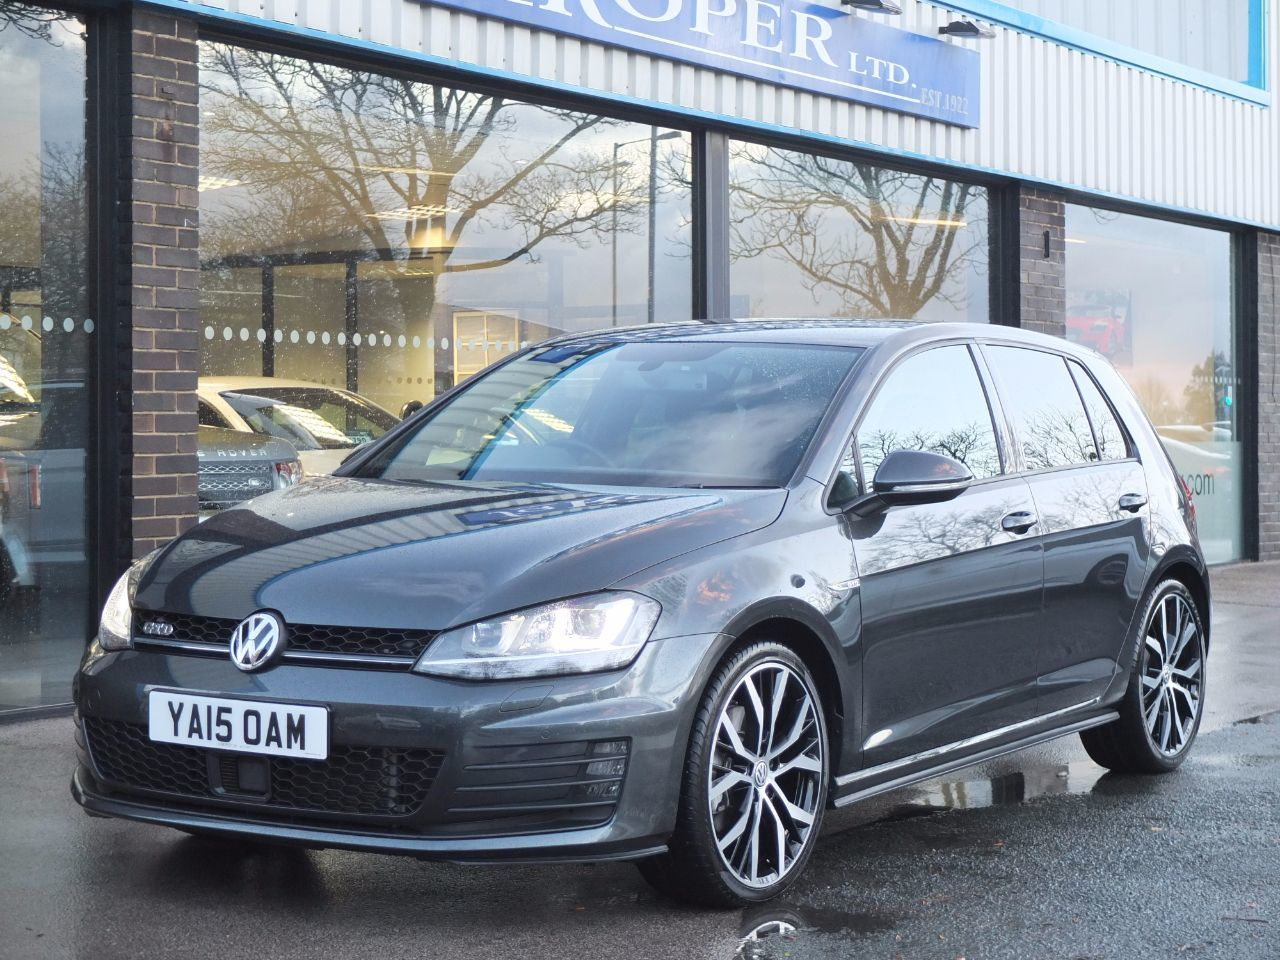 Volkswagen Golf 2.0 TDI GTD 5 Door 184ps DSG Hatchback Diesel Carbon Grey MetallicVolkswagen Golf 2.0 TDI GTD 5 Door 184ps DSG Hatchback Diesel Carbon Grey Metallic at fa Roper Ltd Bradford